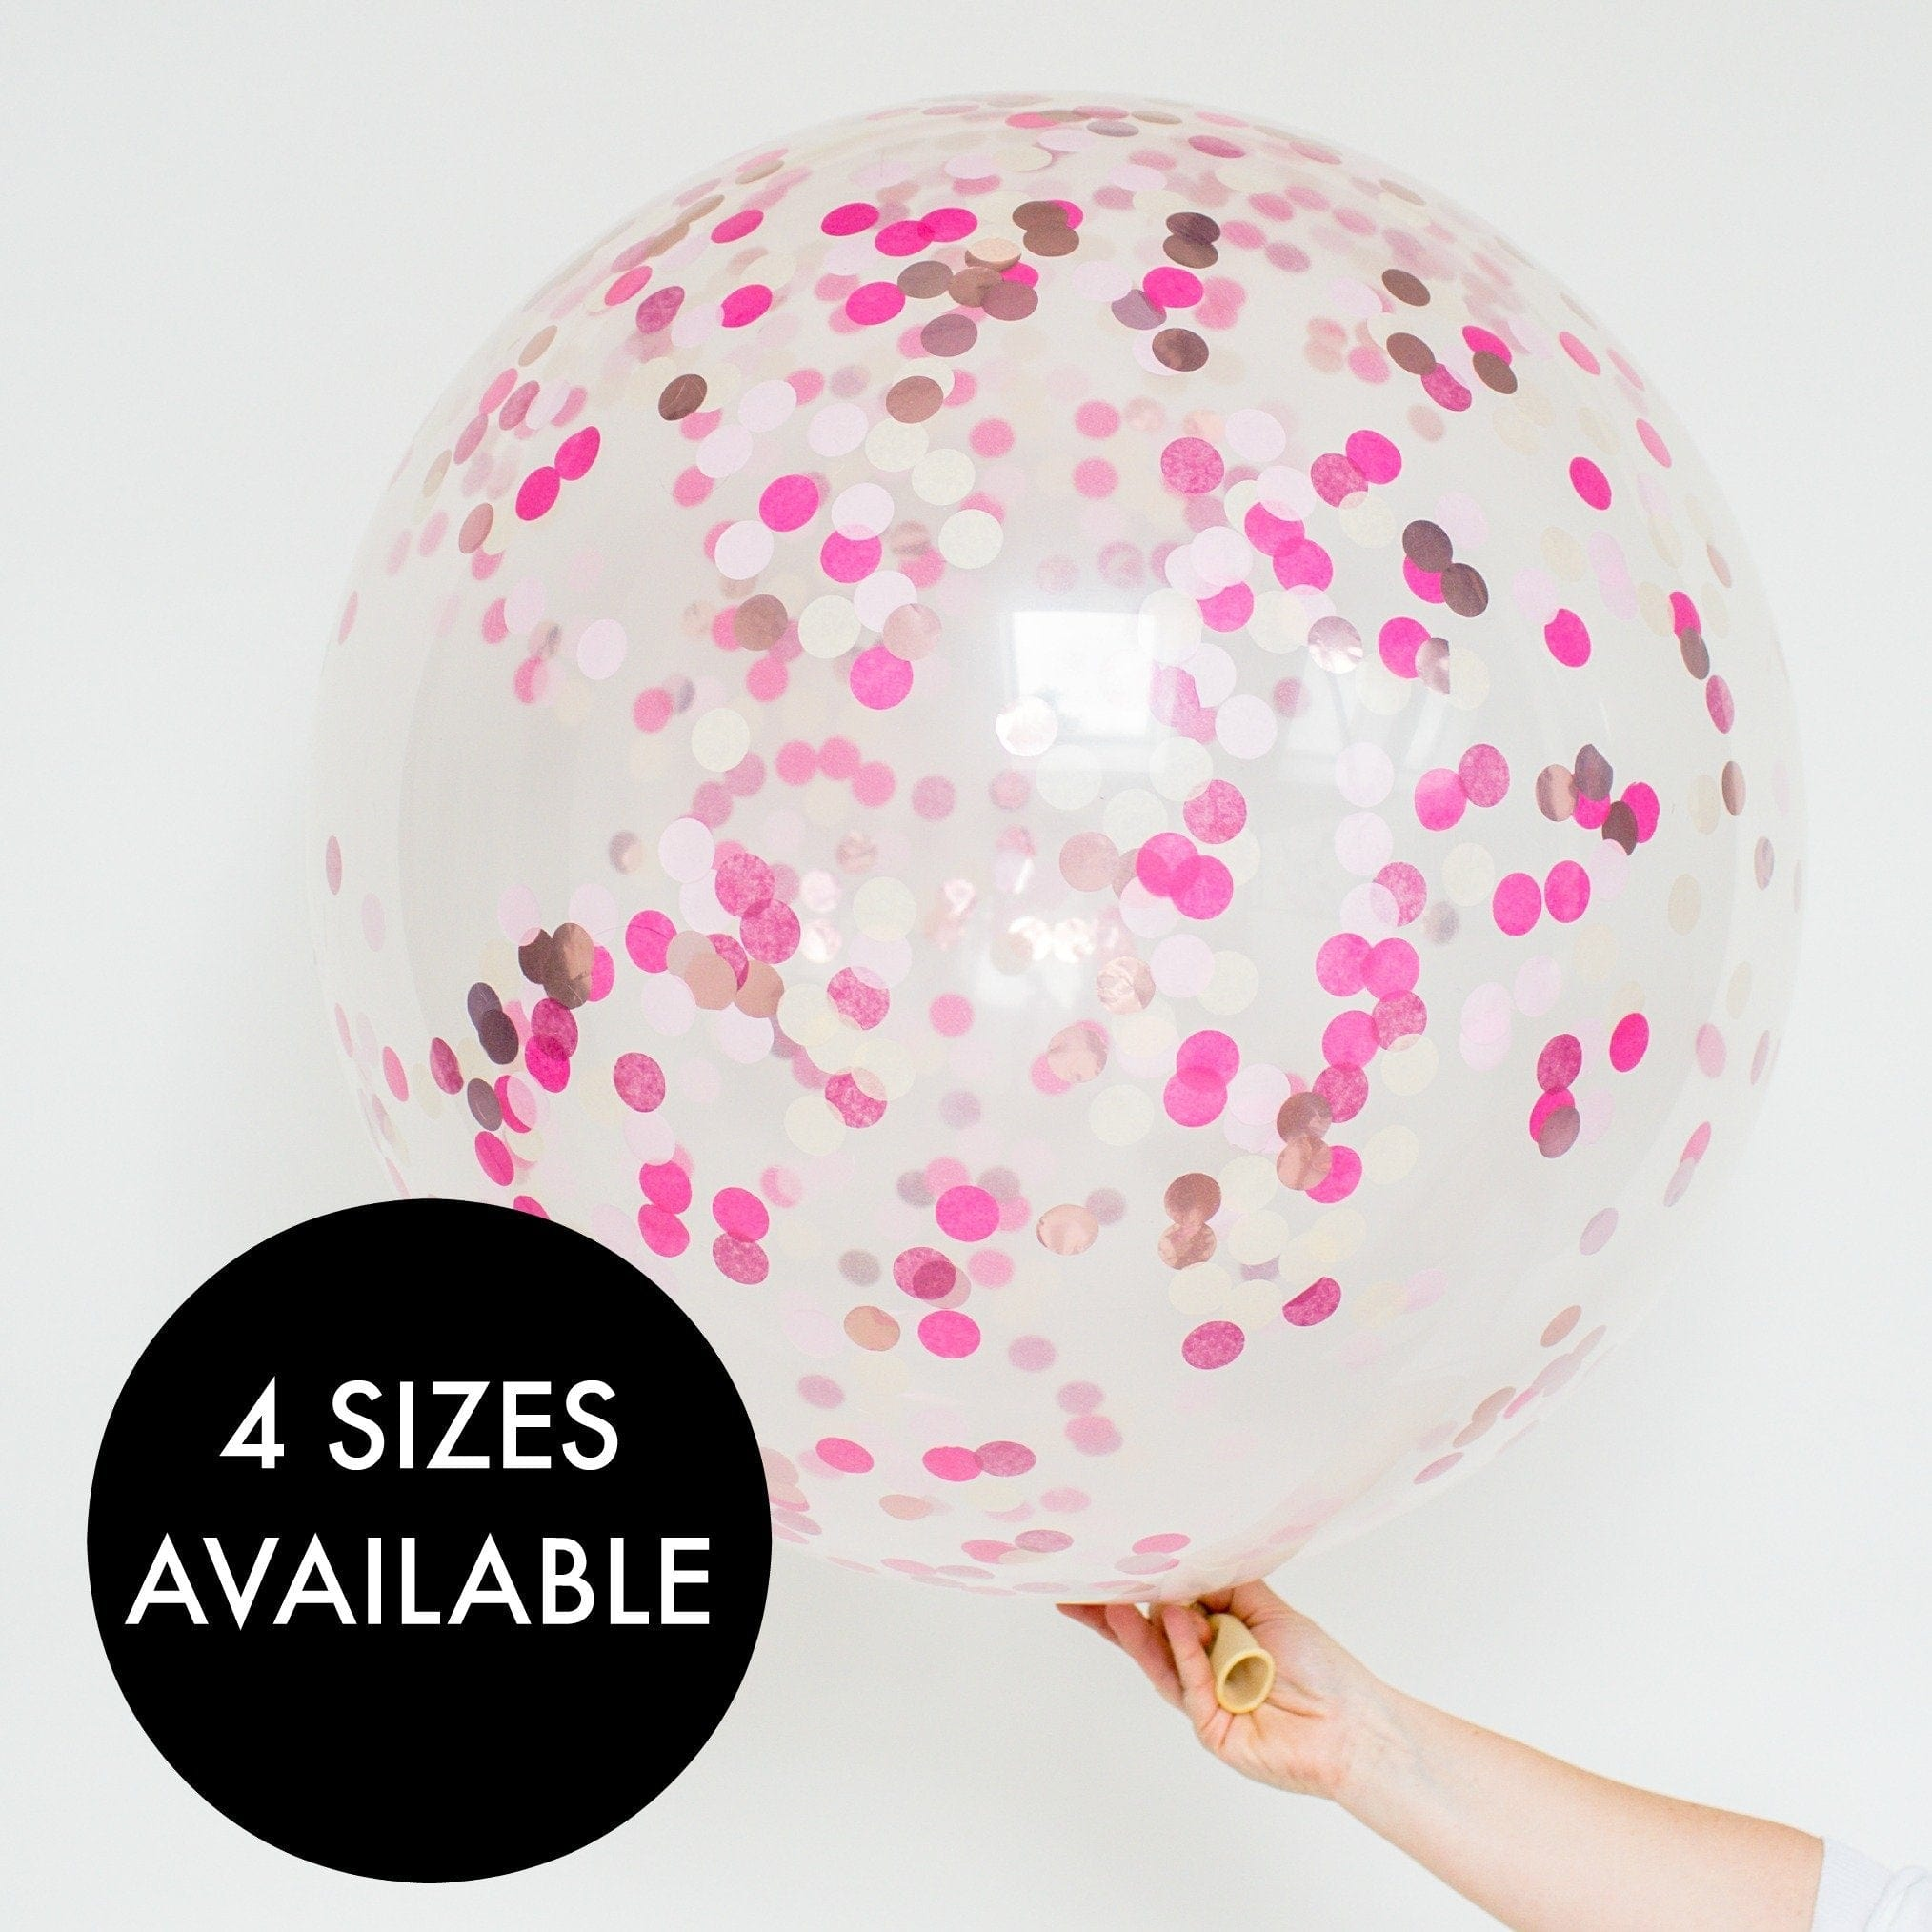 Pink Confetti Filled Giant Balloons